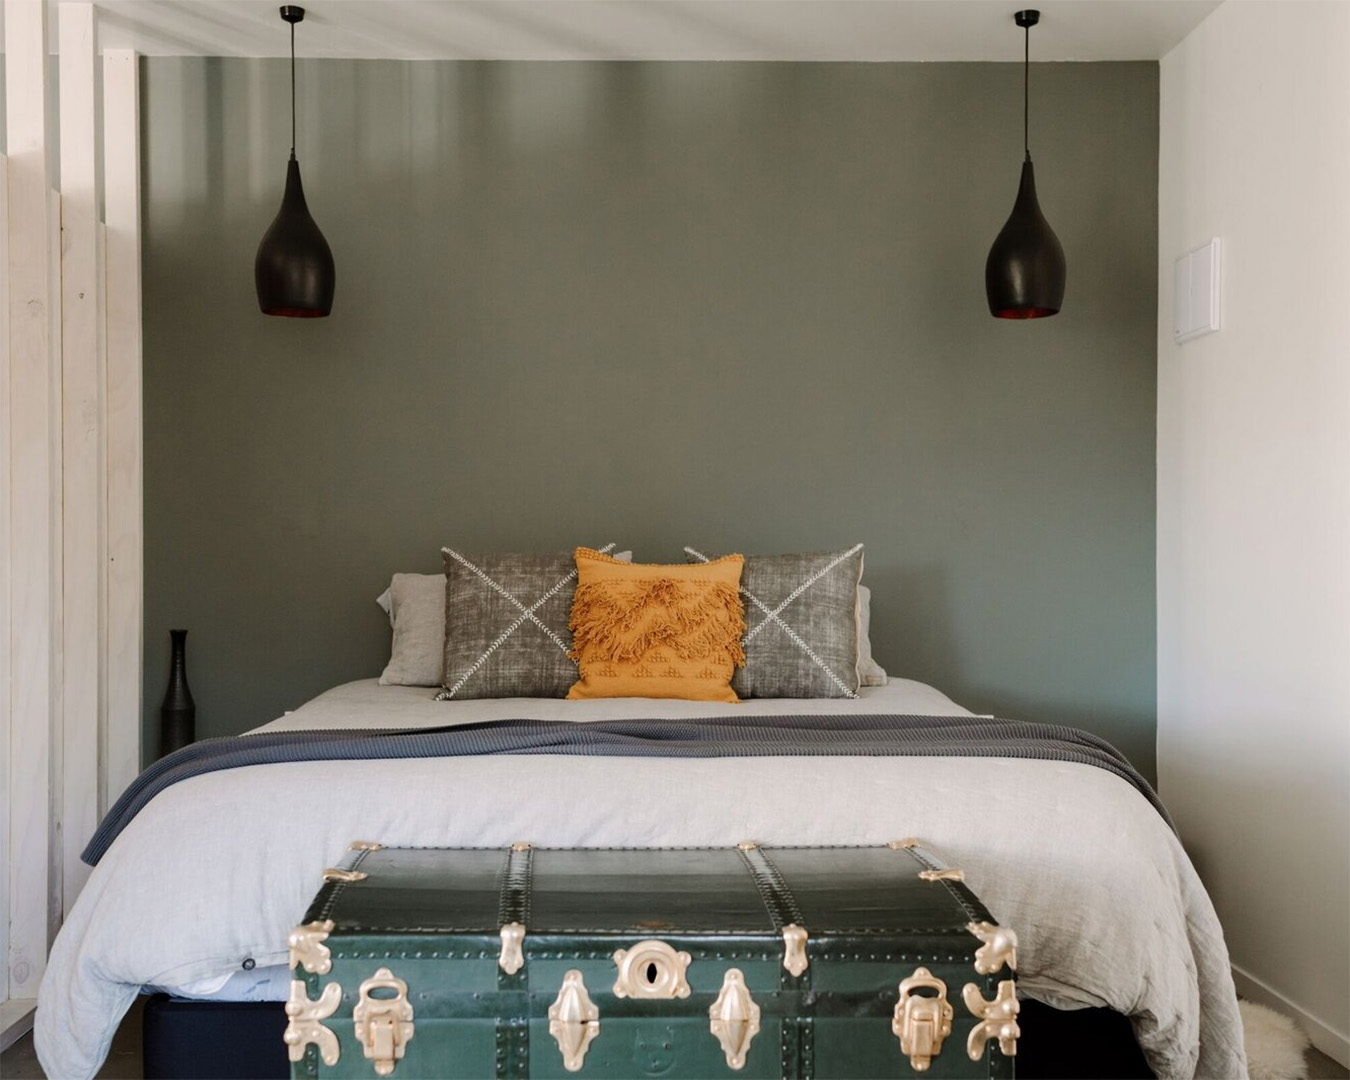 A bedroom at Three Streams showing a comfy bed and country furnishings.